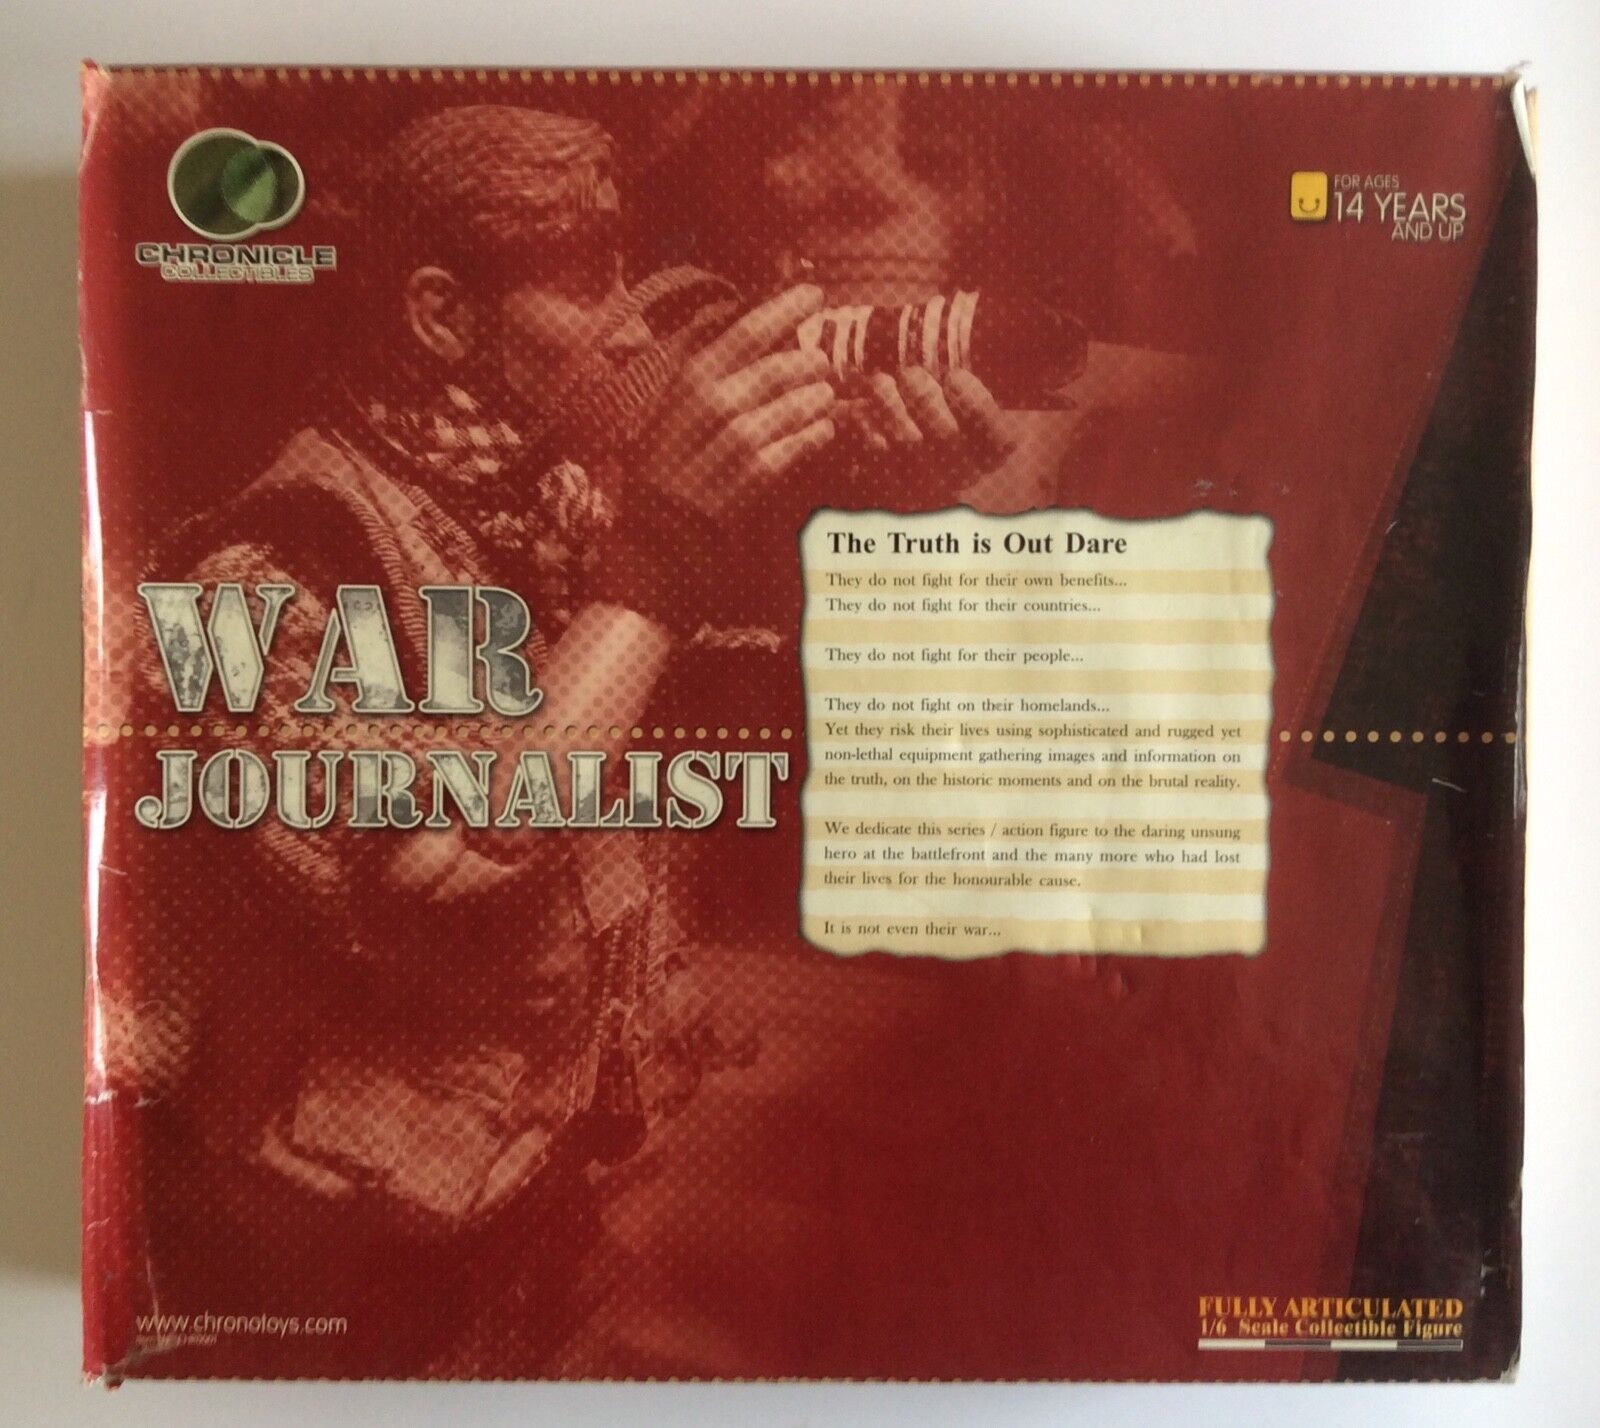 BBI   Chronicle Collectibles 1 6 scale War Journalist.